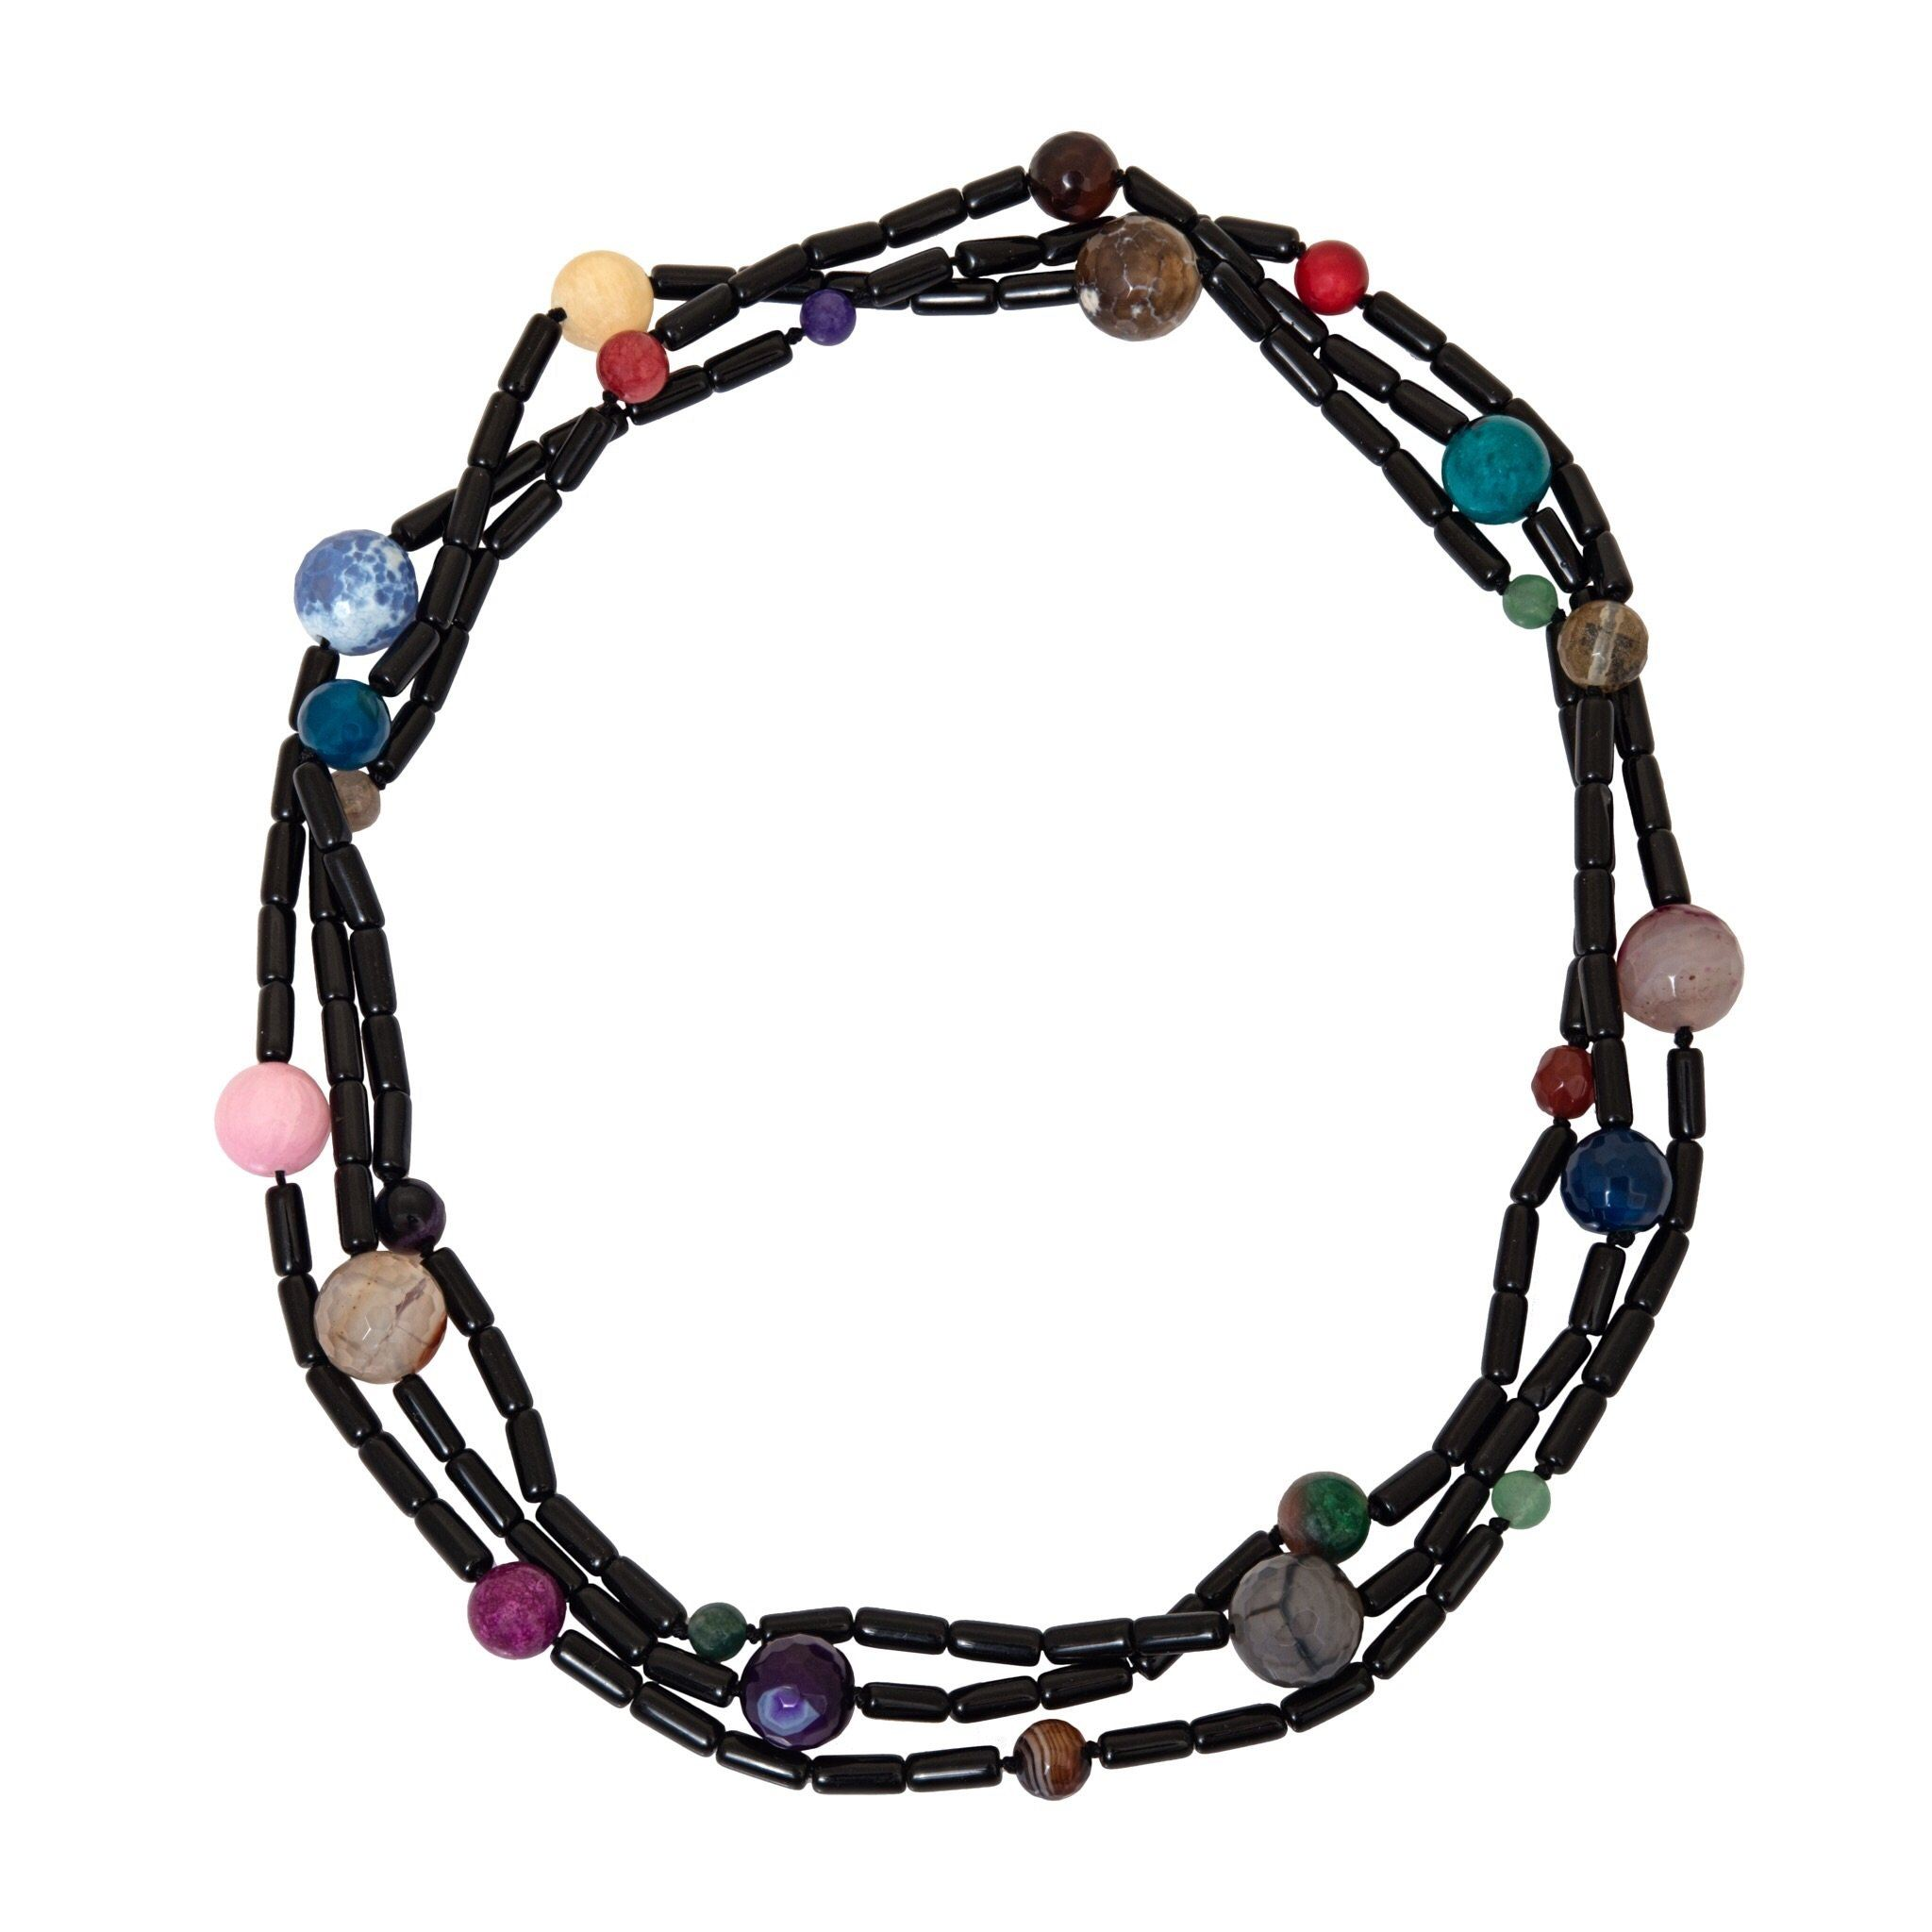 ROMA multicolor onyx long necklace - MadamSiam